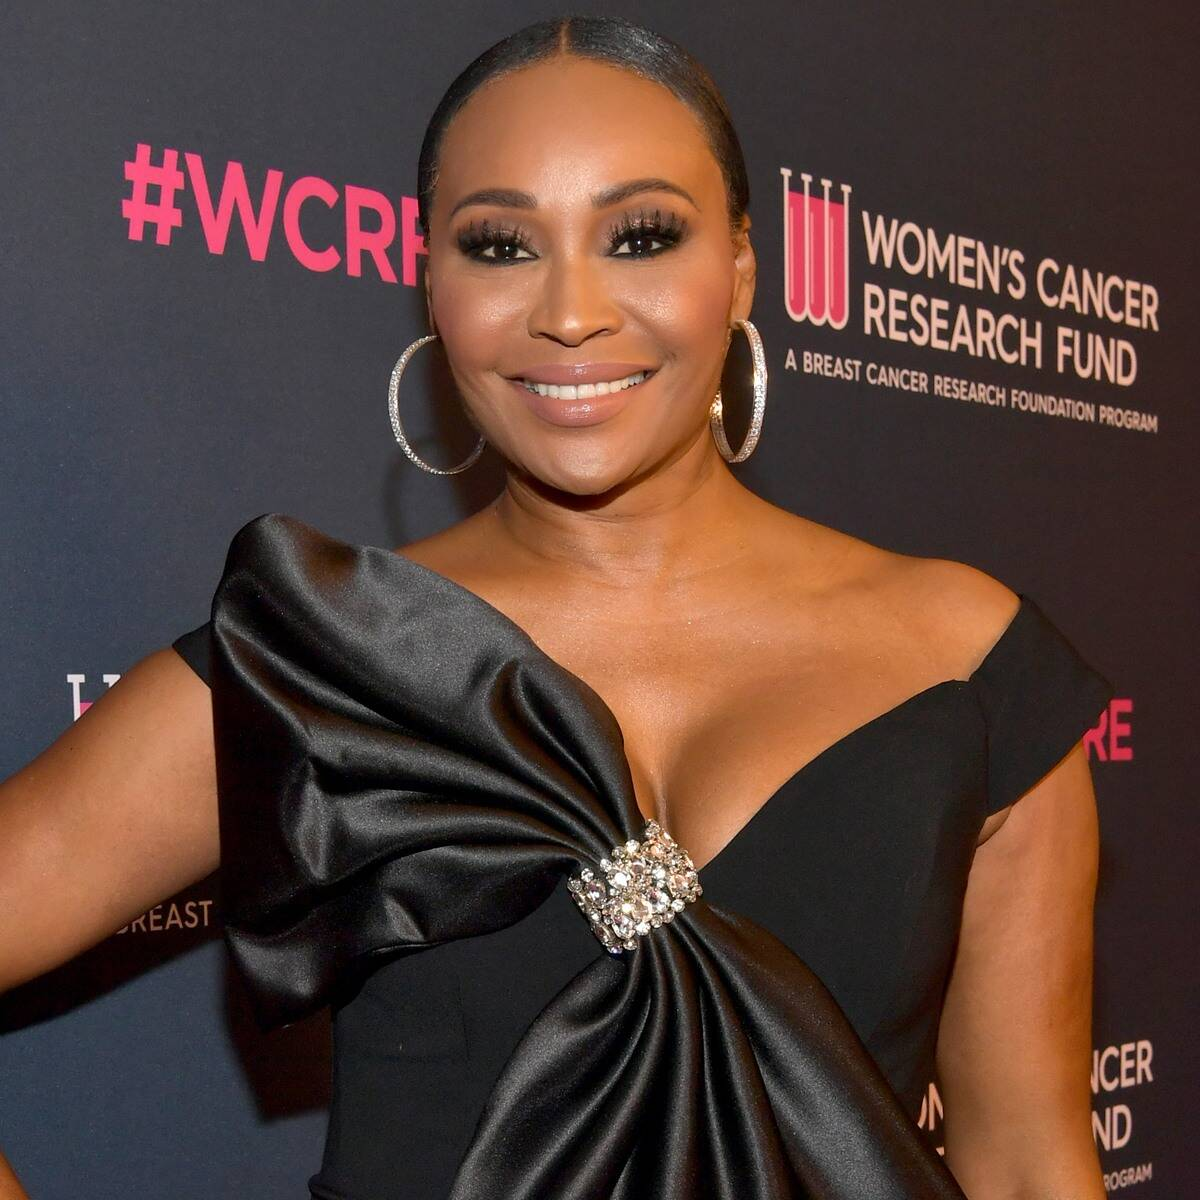 Cynthia Bailey Looks Drop-Dead Gorgeous In This Red Dress - Fans Are Praising Her Weight Loss